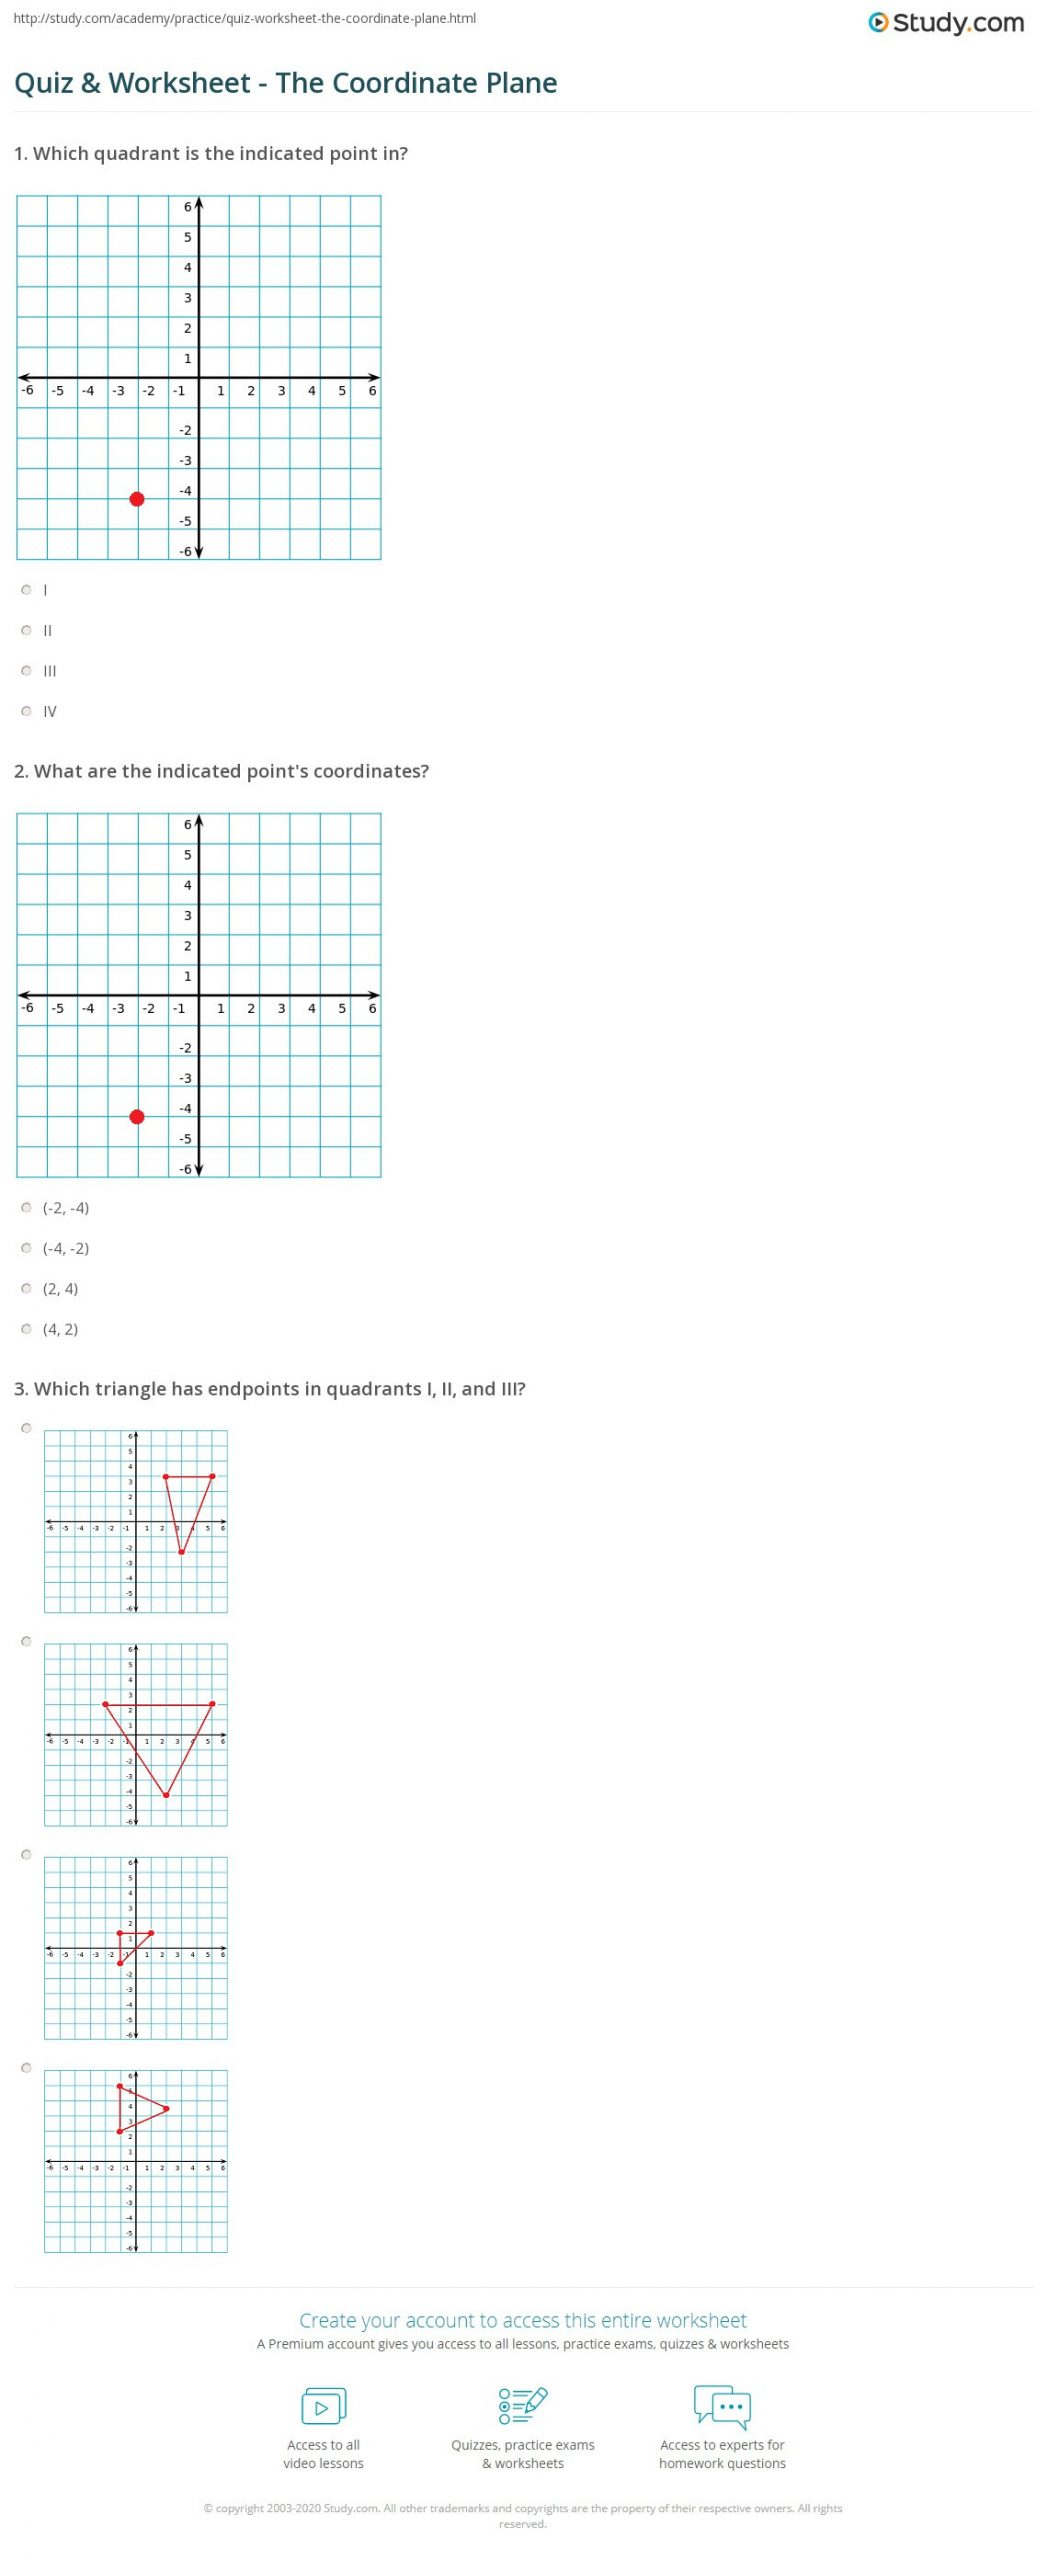 Coordinate Plane Worksheets Middle School Quiz & Worksheet the Coordinate Plane